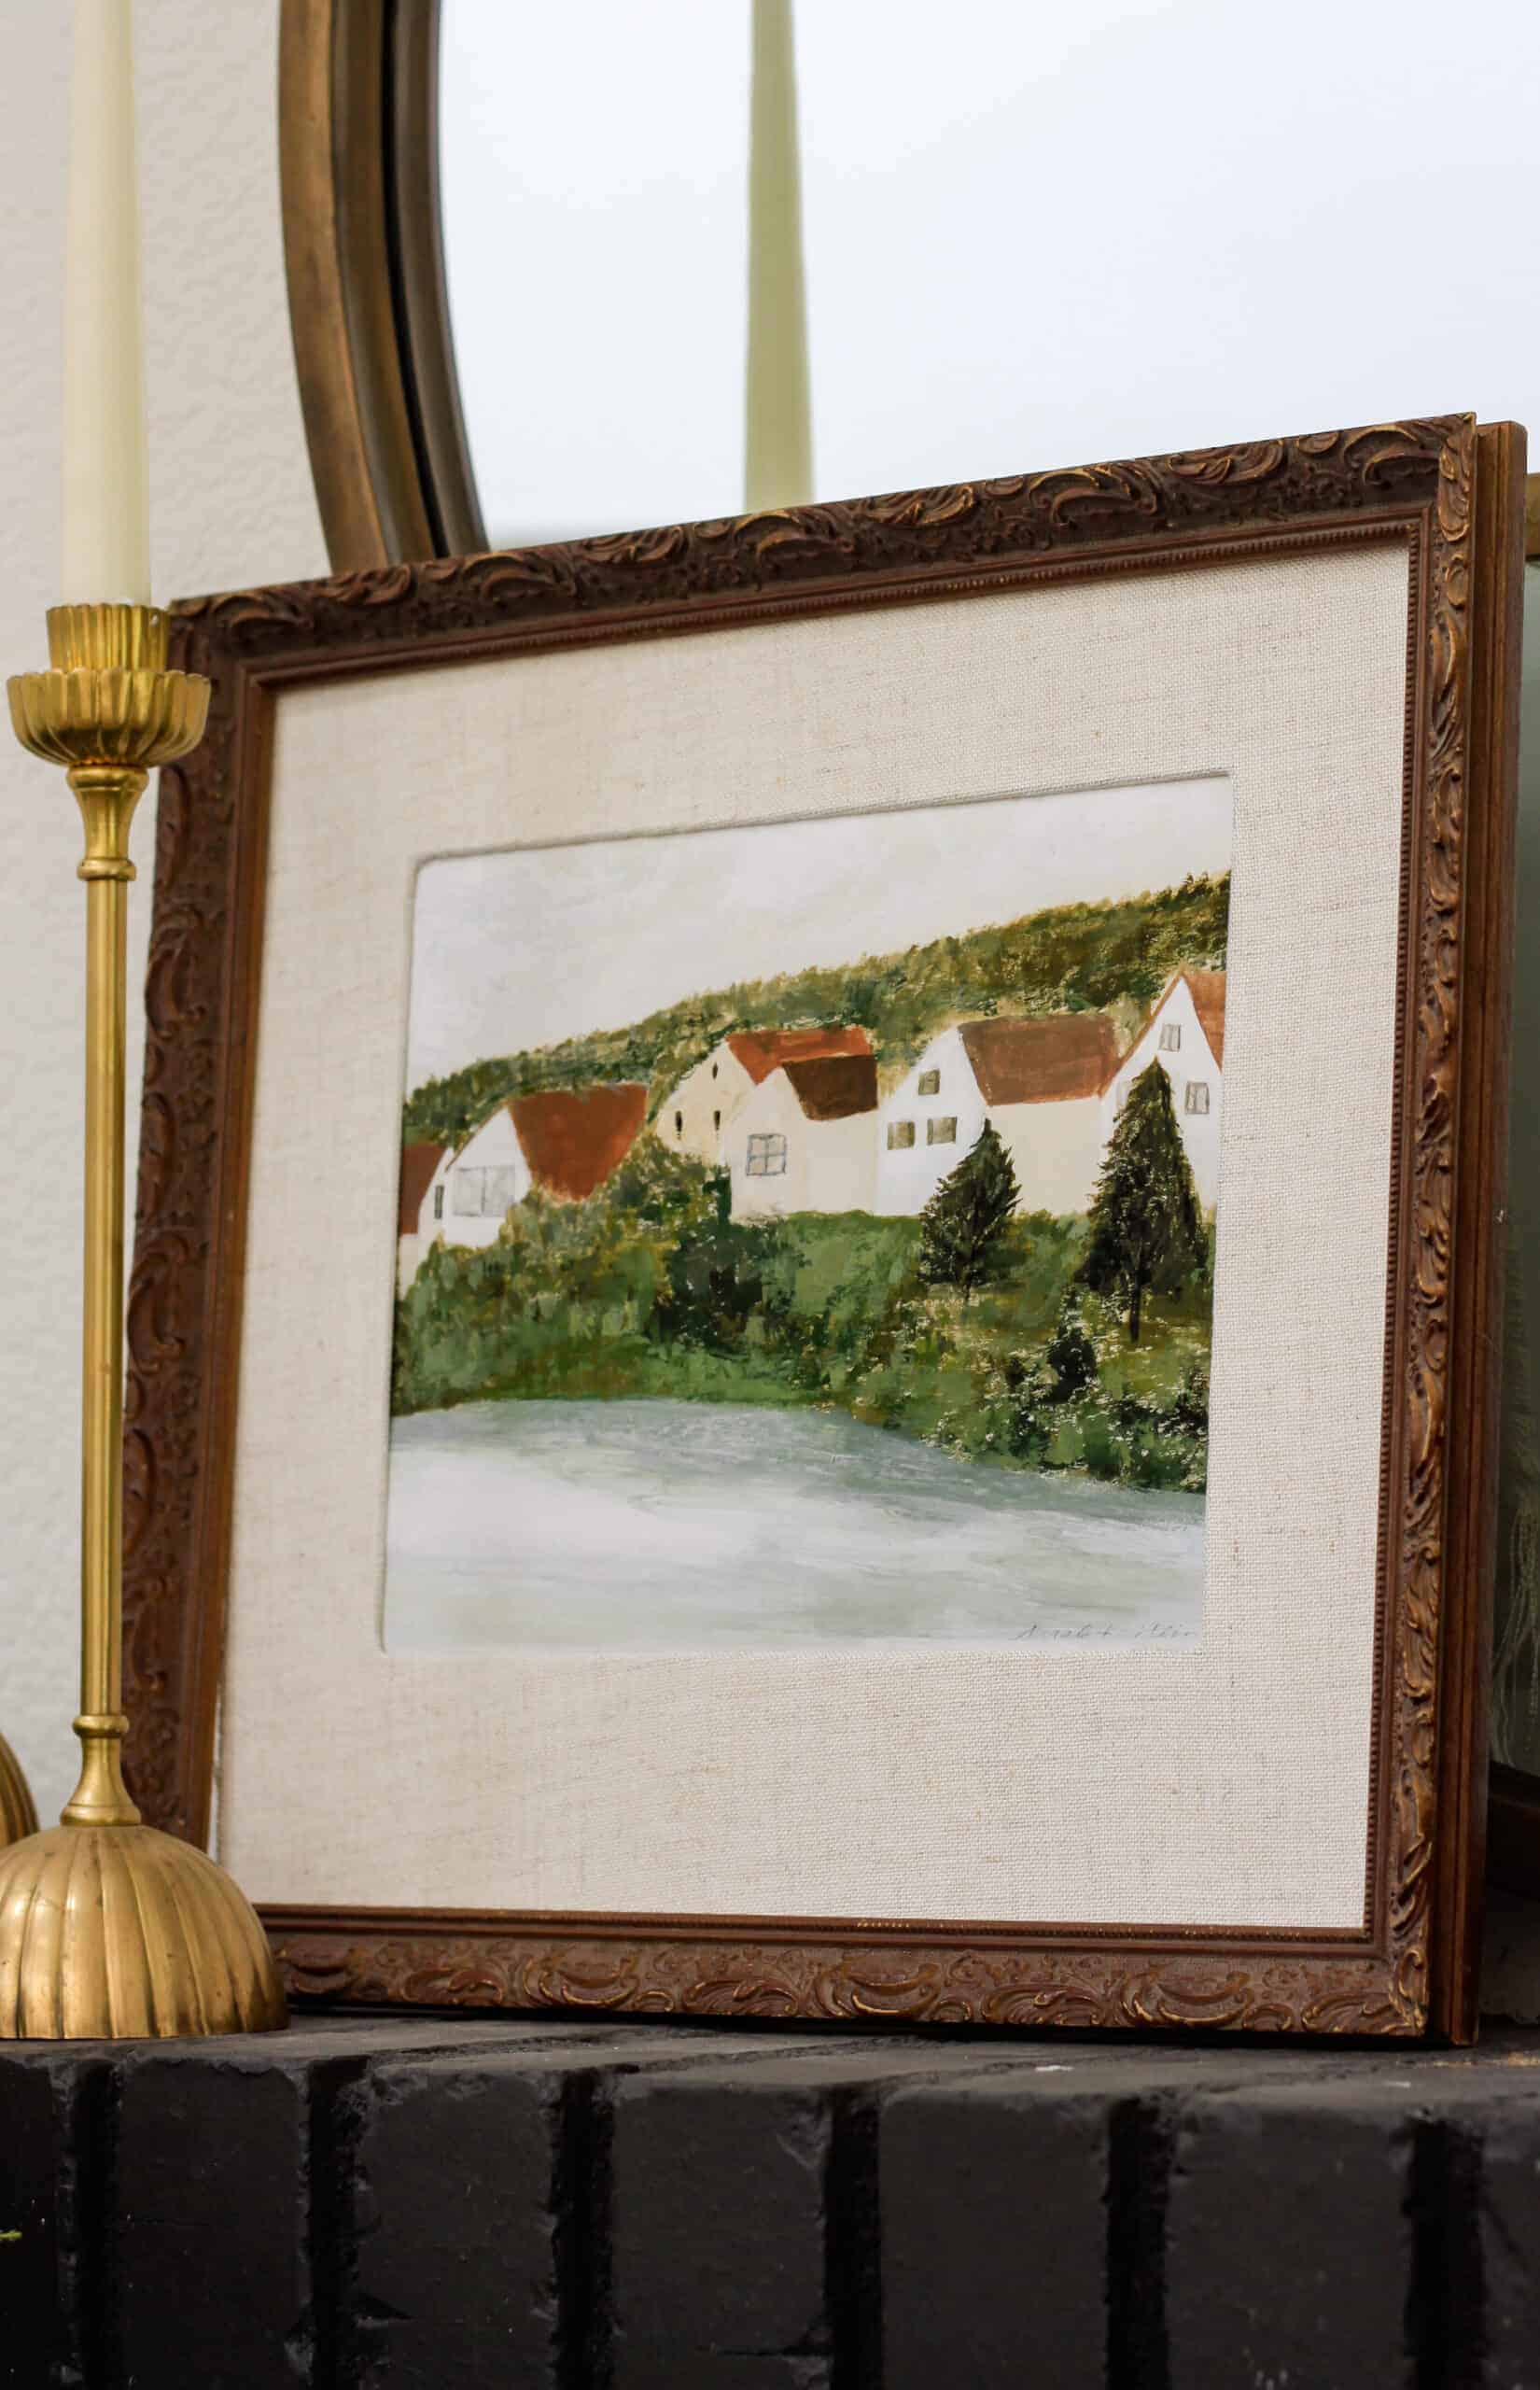 Artwork with houses